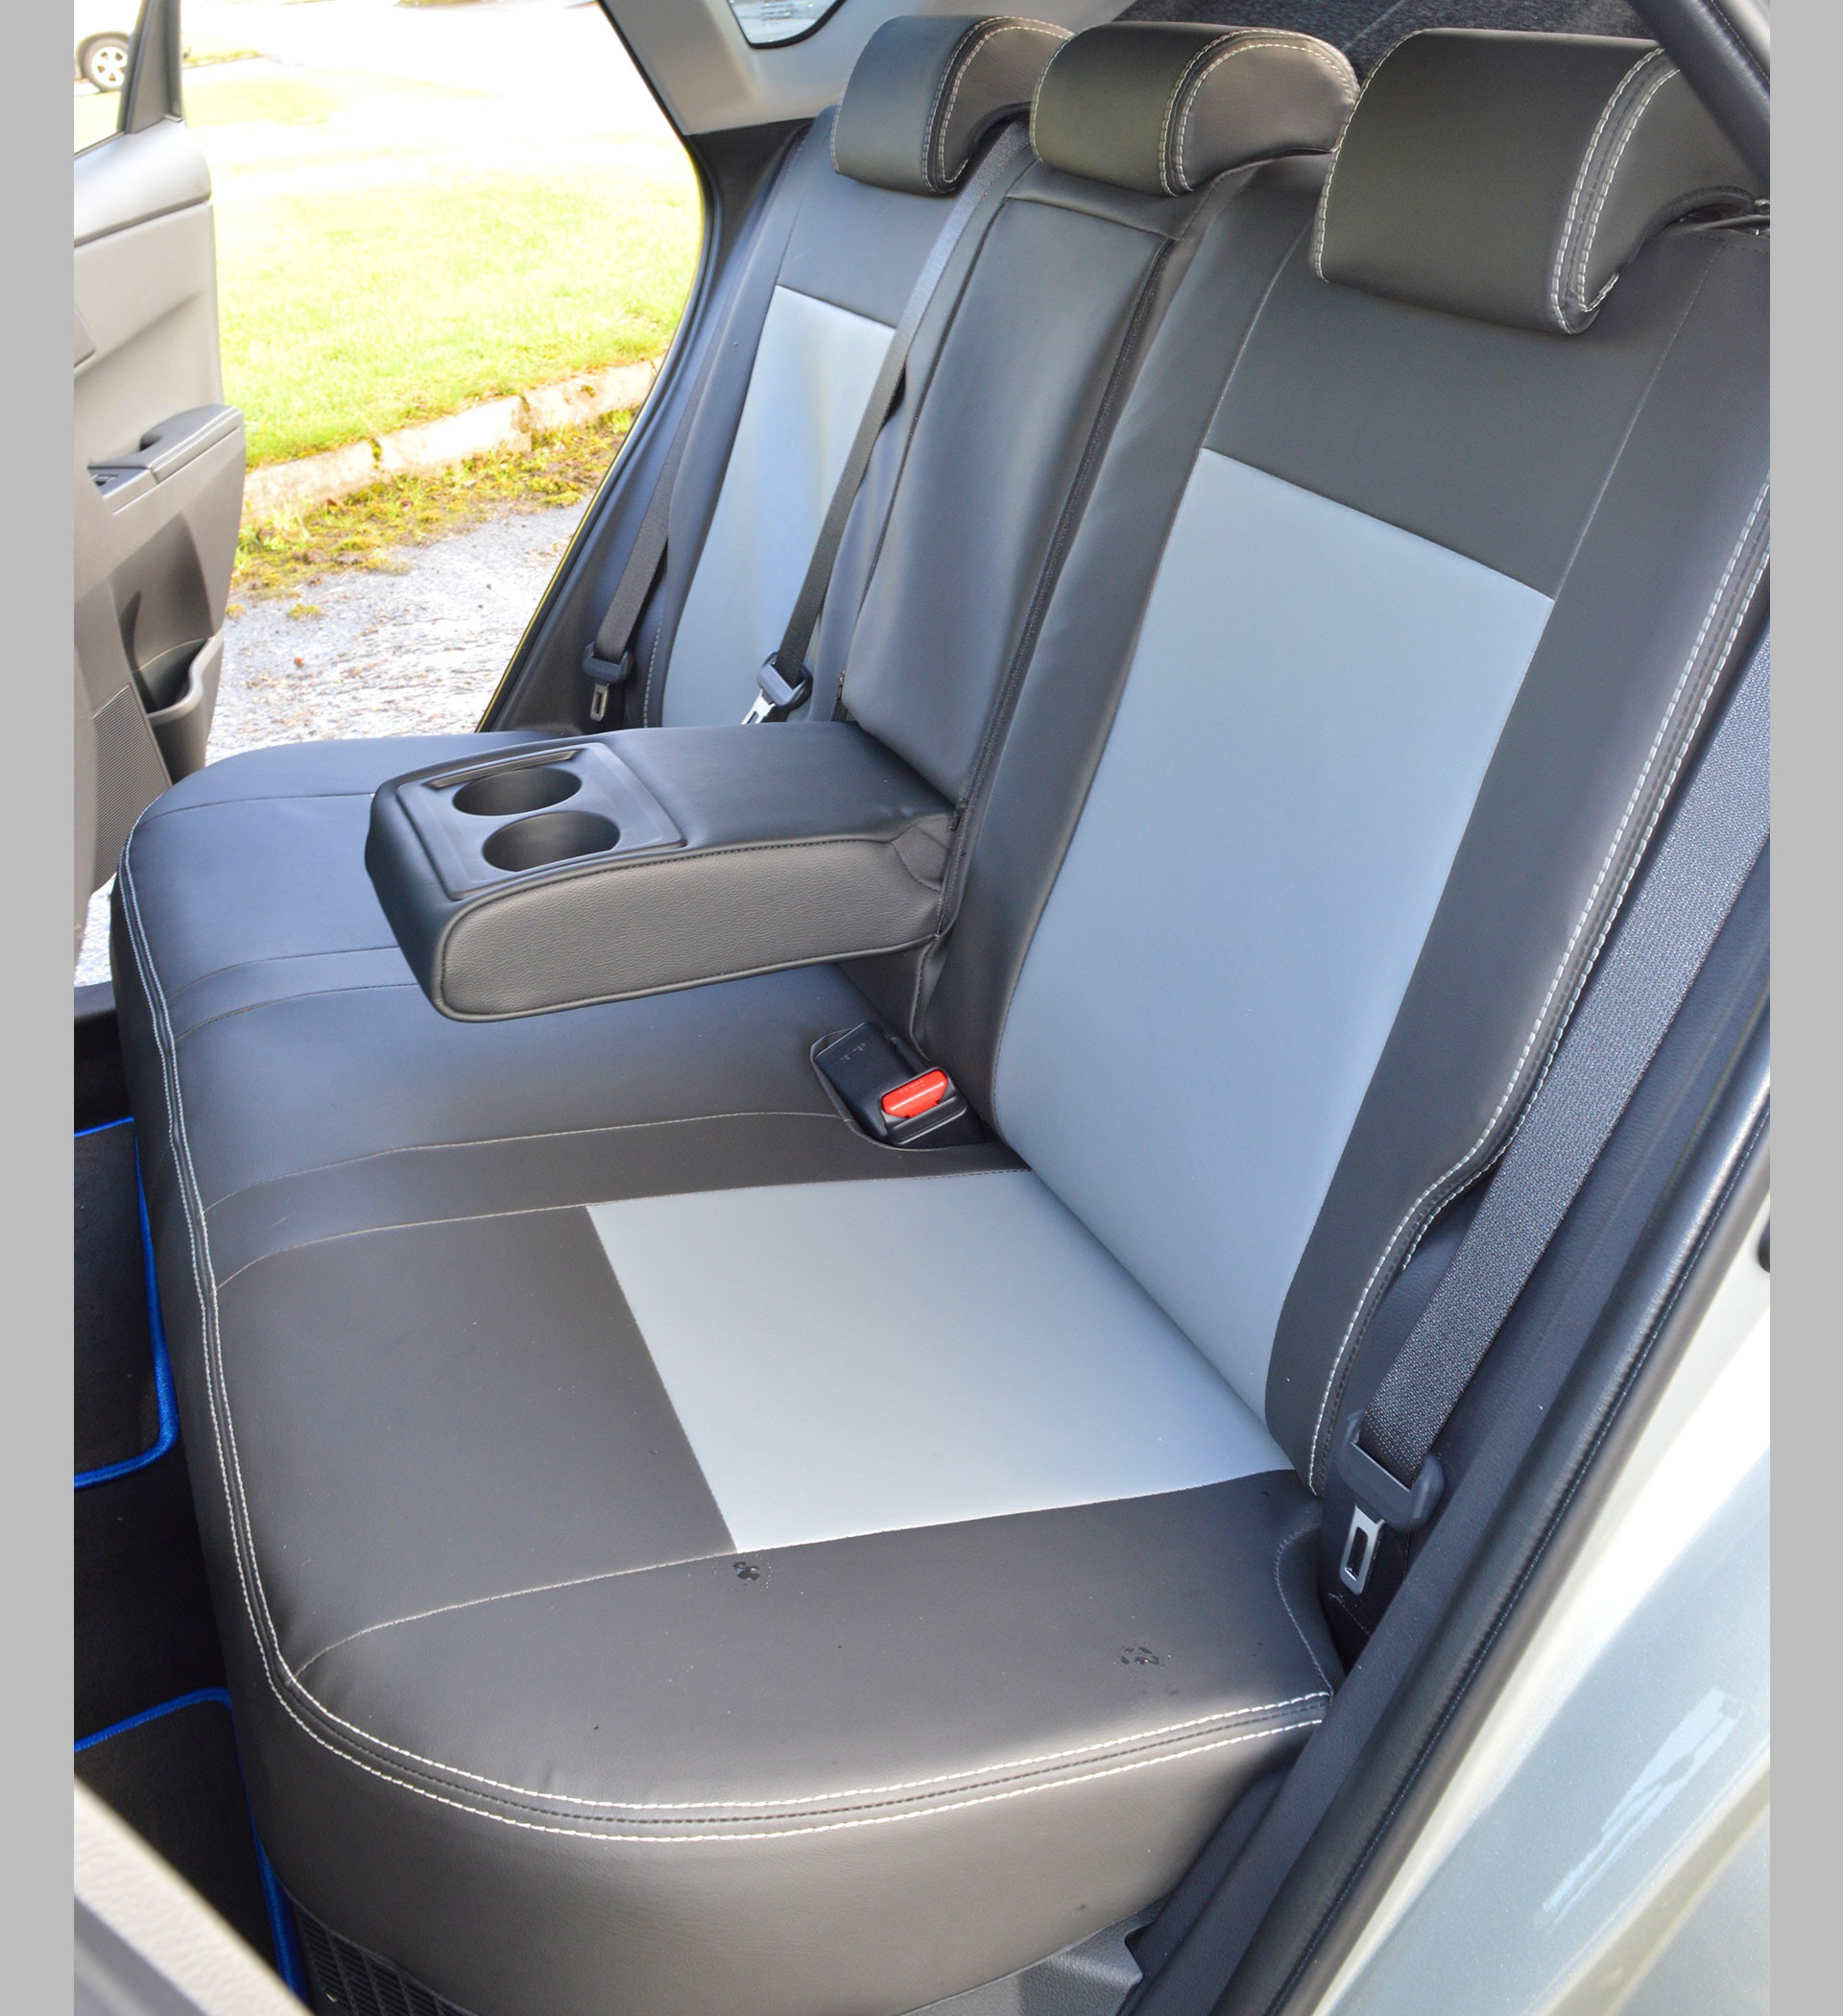 Toyota Seat Covers >> Toyota Auris Hybrid Tailored Seat Covers